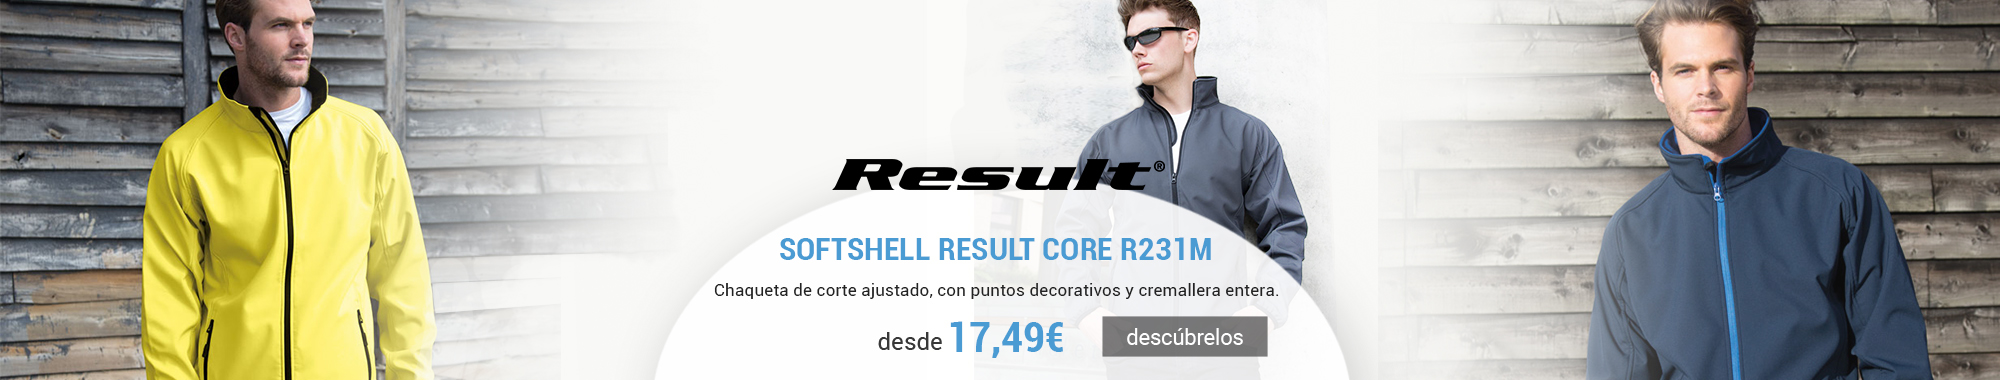 Softshell Result core R231